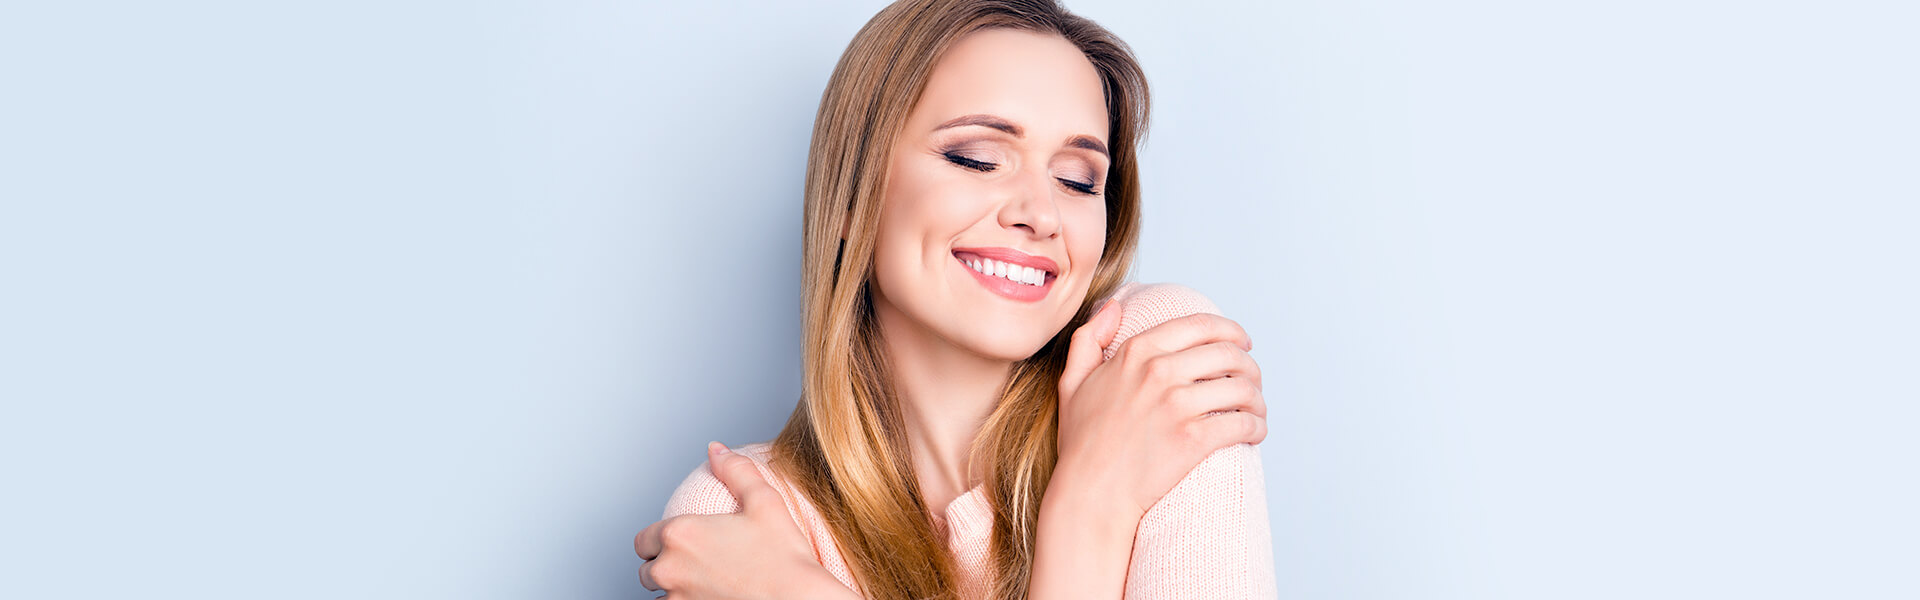 Make Your Smile Bright like a Diamond with Teeth Whitening